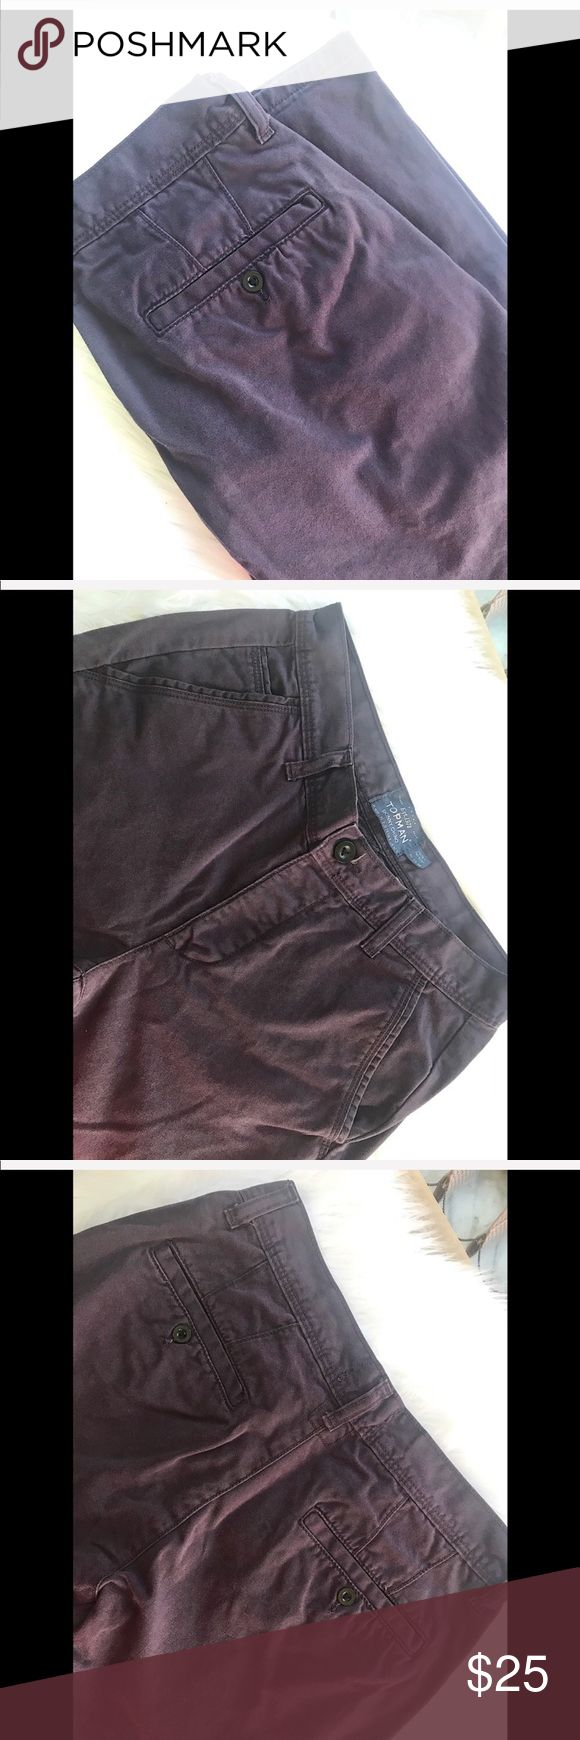 """Topman Skinny Chino Jeans Waist 30"""" Full length 40"""" Inseam 29"""" Leg opening 7""""  100% Cotton  NO TRADES 🙅🏻 ALL REASONABLE OFFERS ARE ACCEPTED 😊👍🏽 NO LOWBALLERS!!! 😒✌🏽️✌🏽 LET'S BUNDLE!!!! 🎋🎉🎁🎊🎈  🌹(53) Topman Jeans Skinny"""